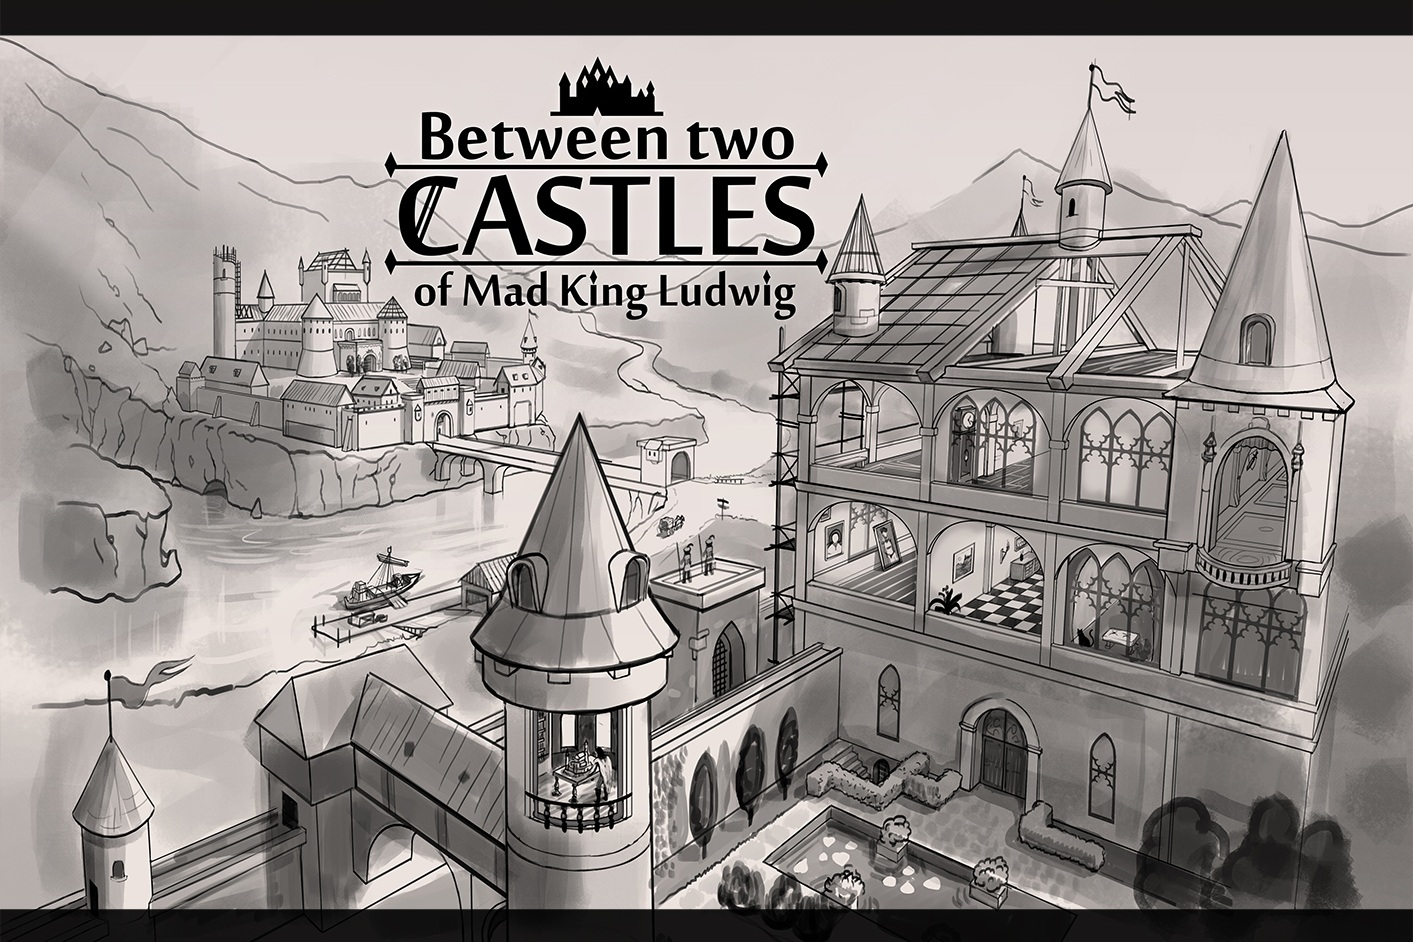 Between-Two-Castles-of-Mad-King-Ludwig_cover-sketch1.jpg